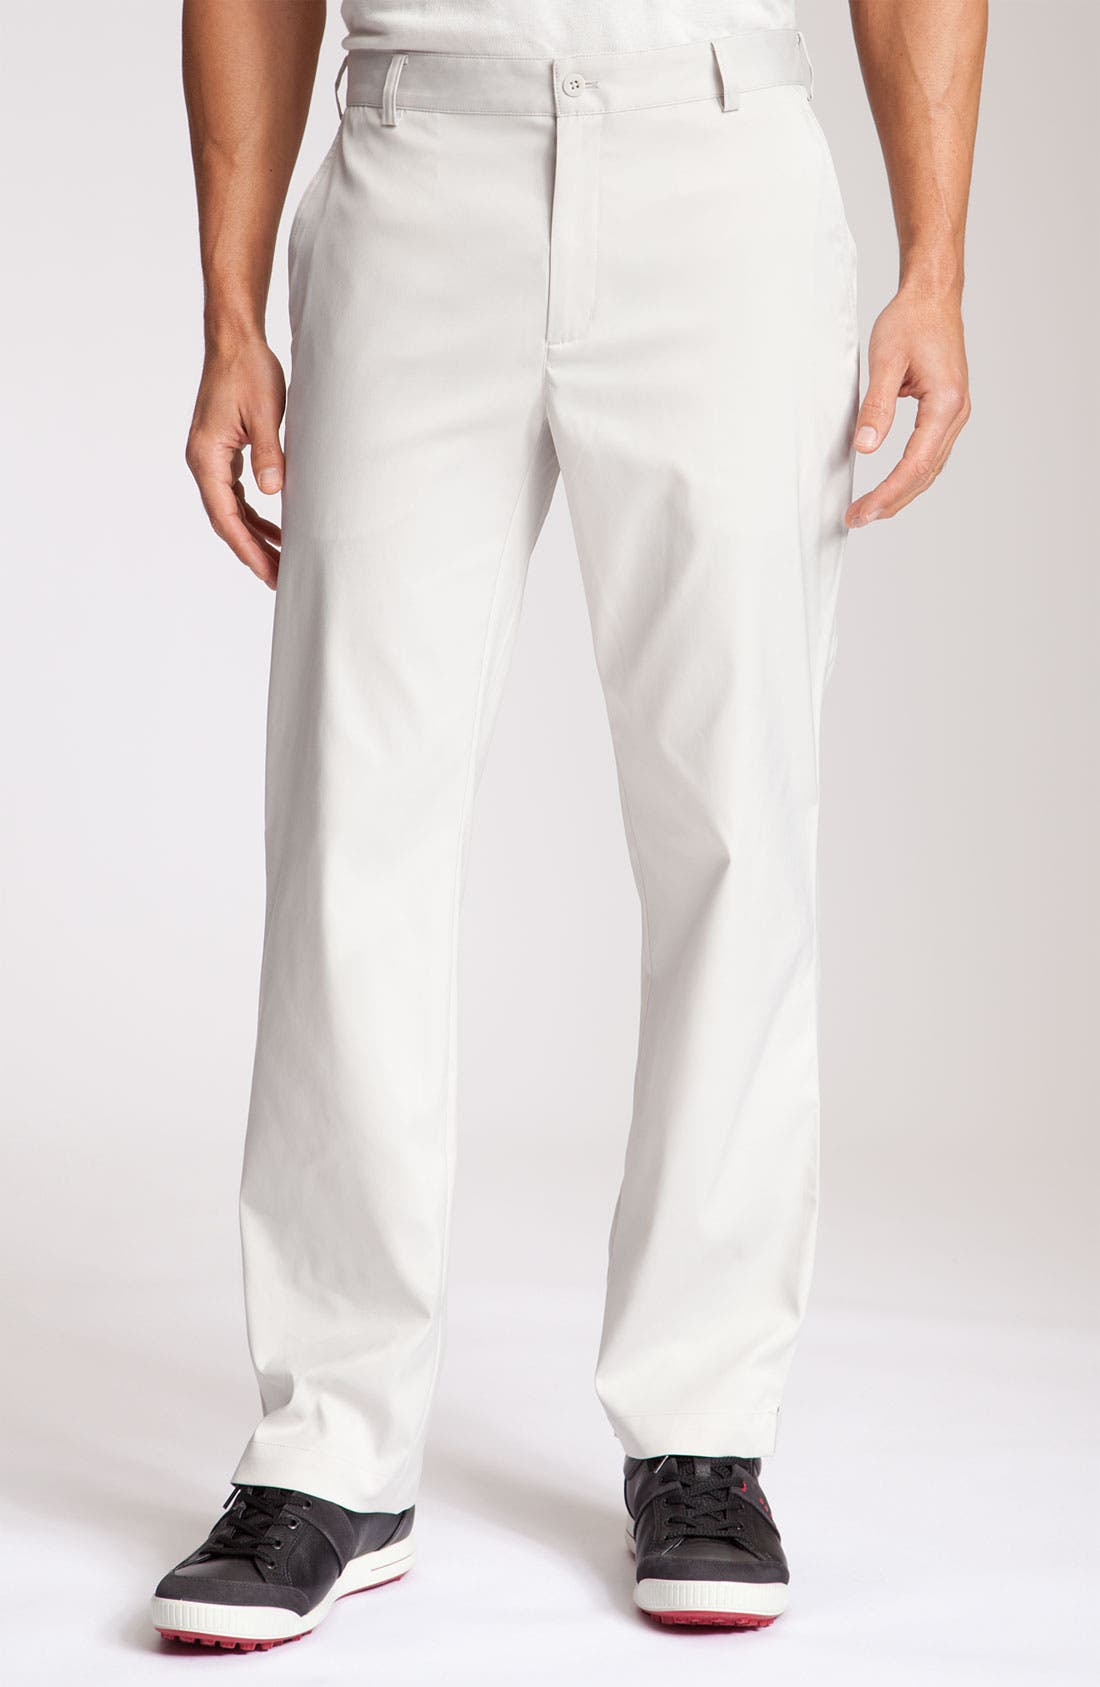 Alternate Image 1 Selected - Nike Golf Collection Flat Front Golf Pants